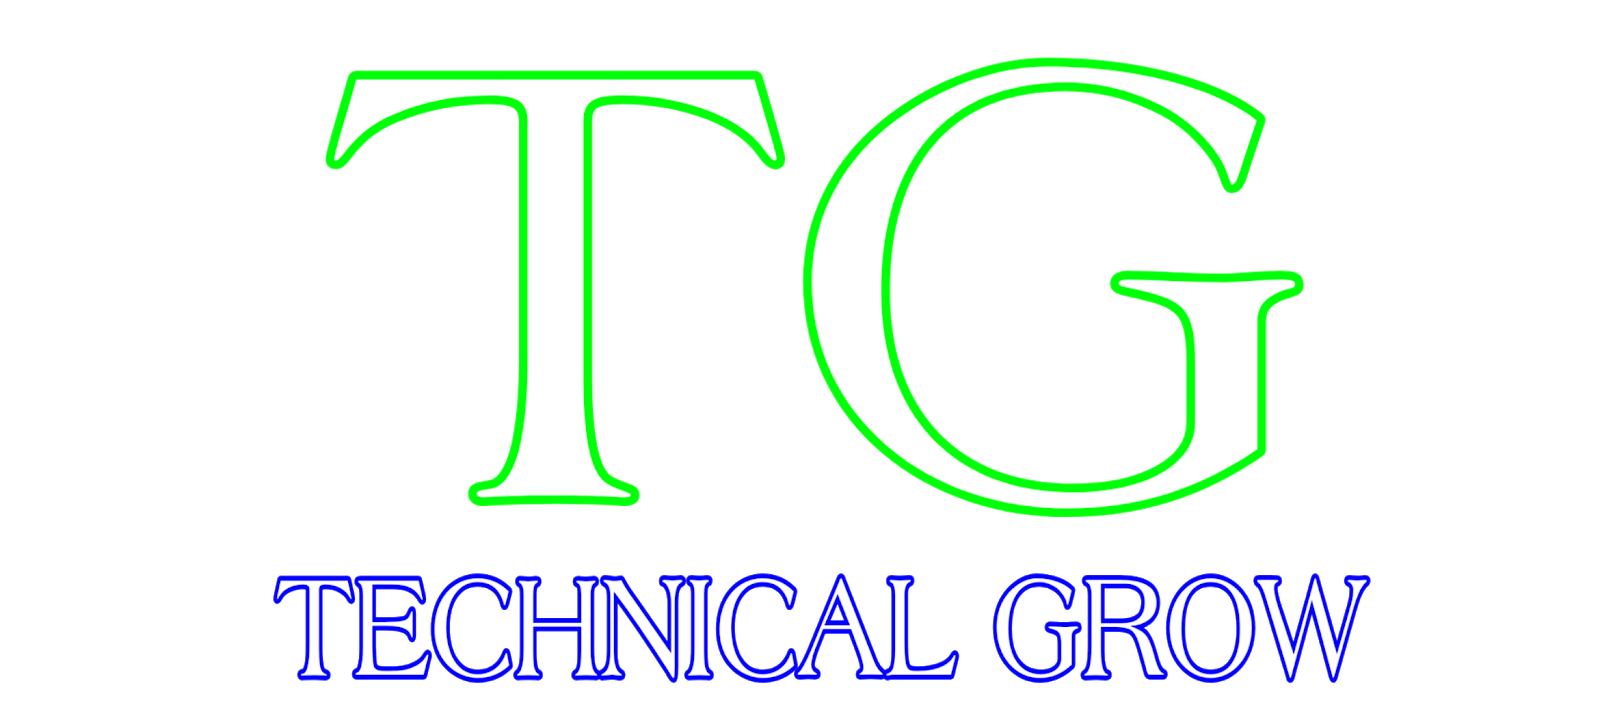 Technical Grow